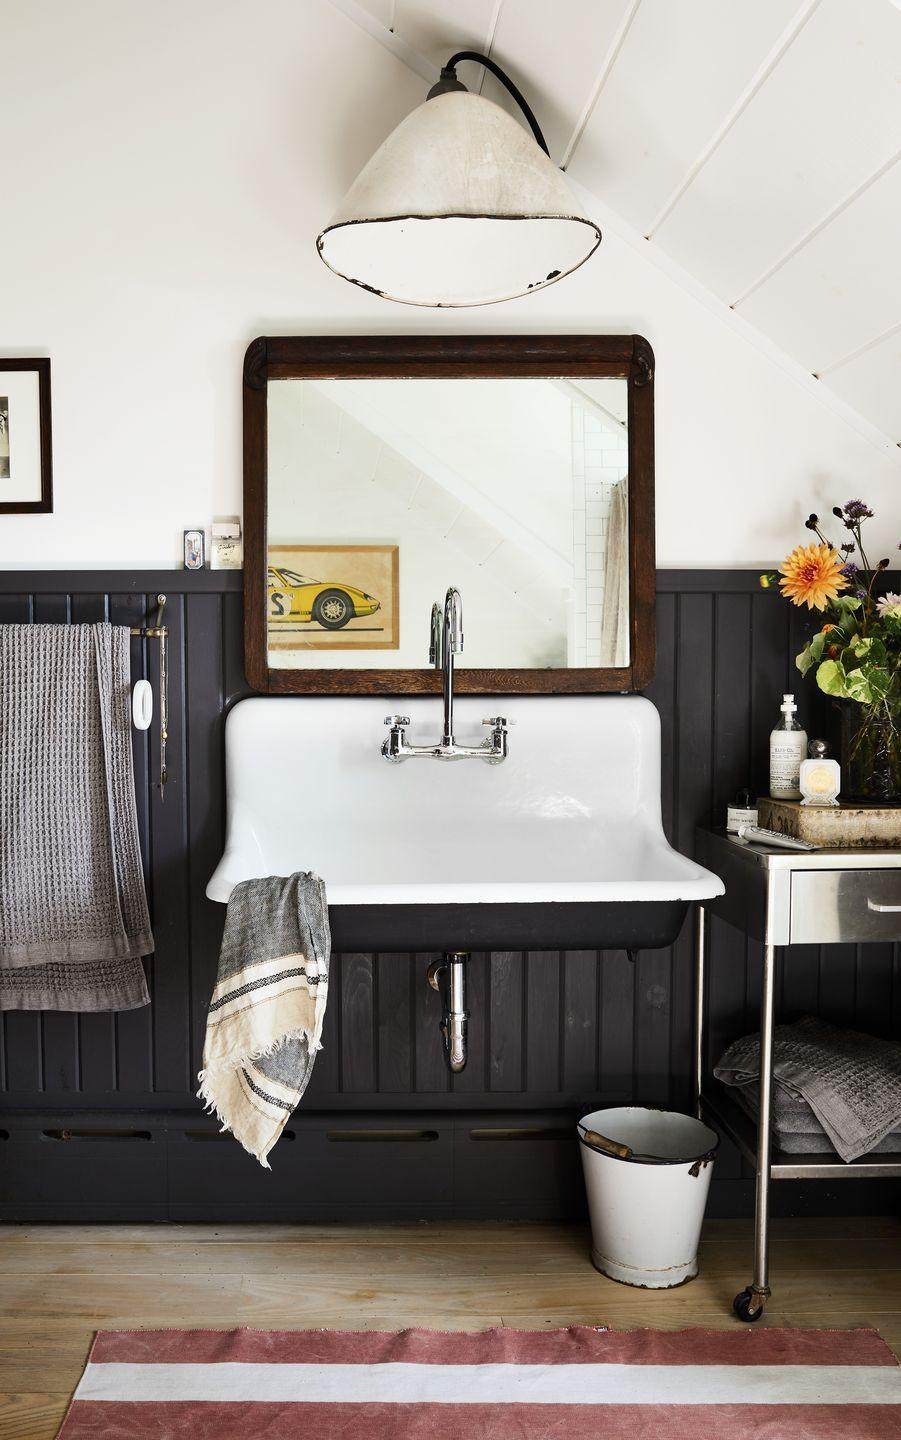 """<p>This curated bathroom strikes the perfect balance between masculine and feminine. A vintage wall sink vanity and a stainless steel rolling table look thoughtfully placed against a black beadboard wall. For a similar look, try <a href=""""https://www.behr.com/consumer/colors/paint/color/N490-7"""" rel=""""nofollow noopener"""" target=""""_blank"""" data-ylk=""""slk:Ink Black by Behr"""" class=""""link rapid-noclick-resp"""">Ink Black by Behr</a>.</p>"""